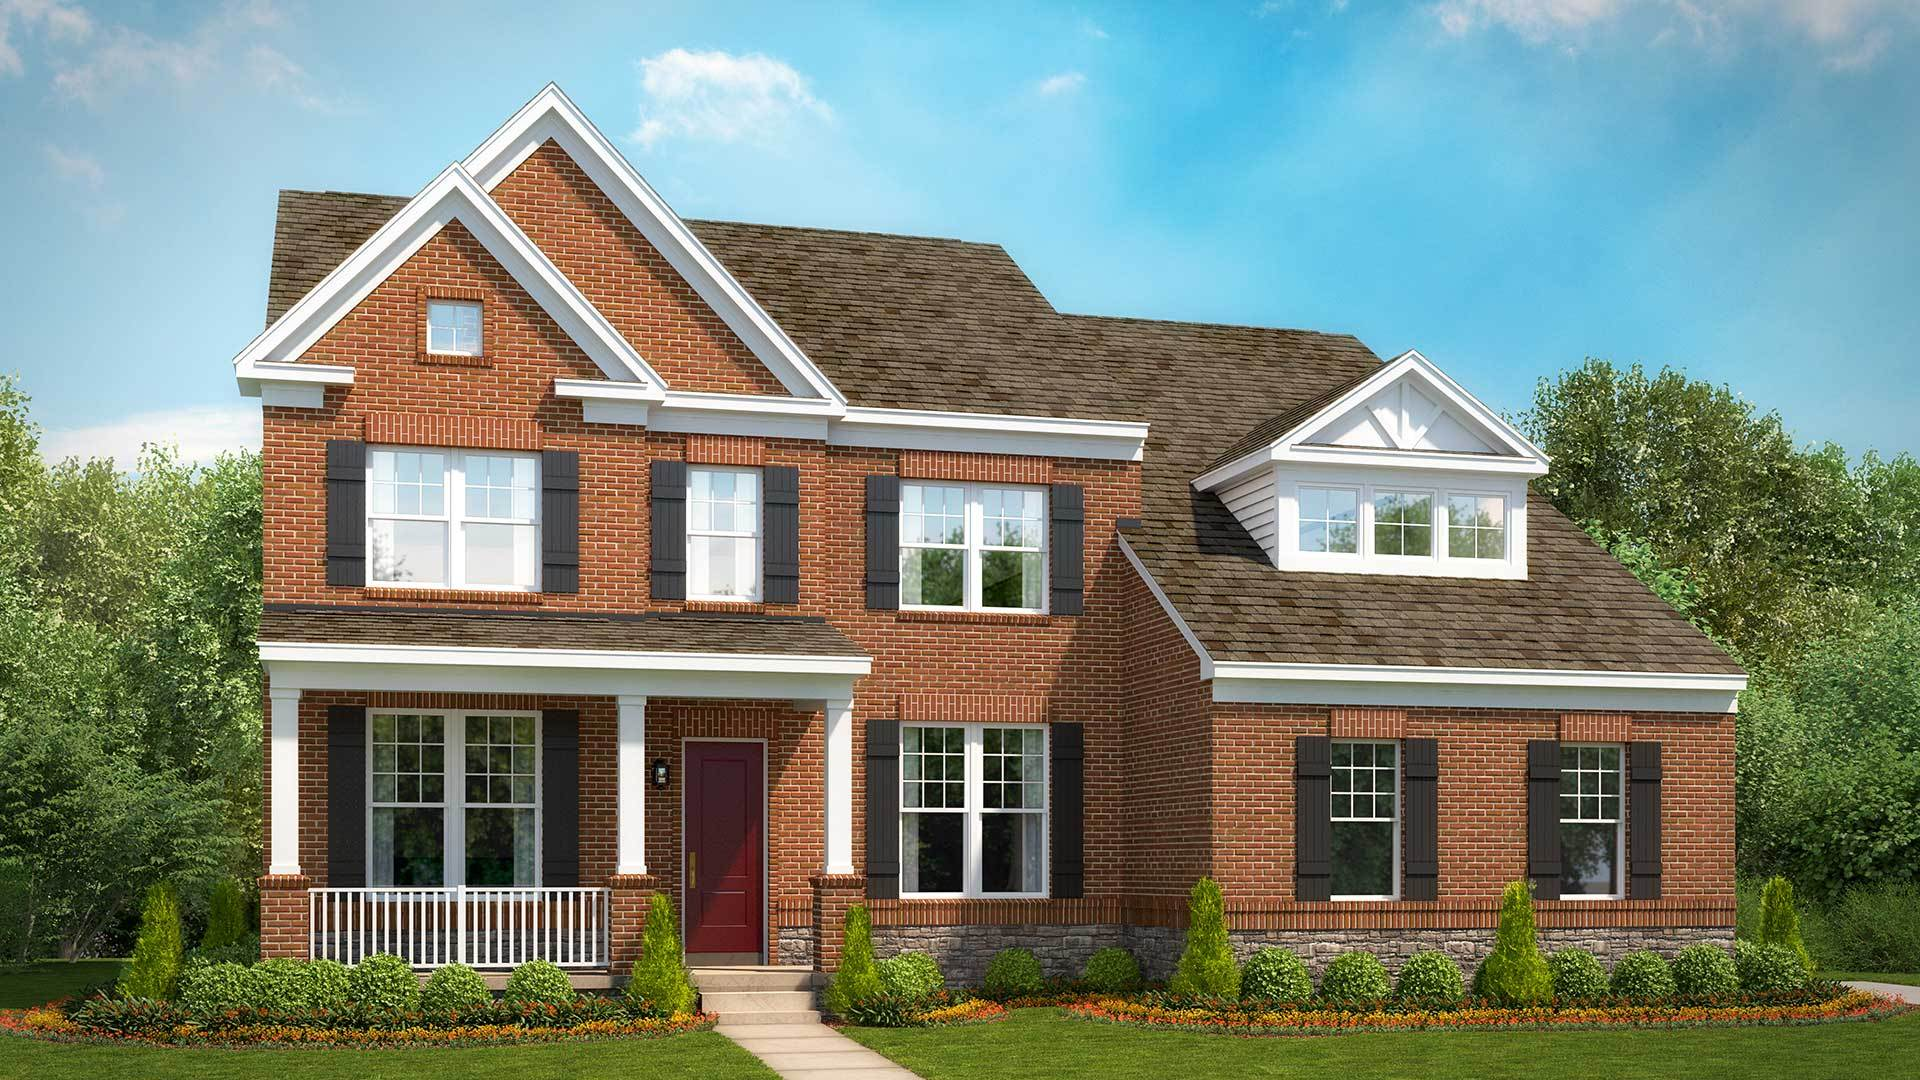 Single Family for Active at Greenwood Farm - Taylor 3651 Greenwood Farm Dr. Haymarket, Virginia 20169 United States